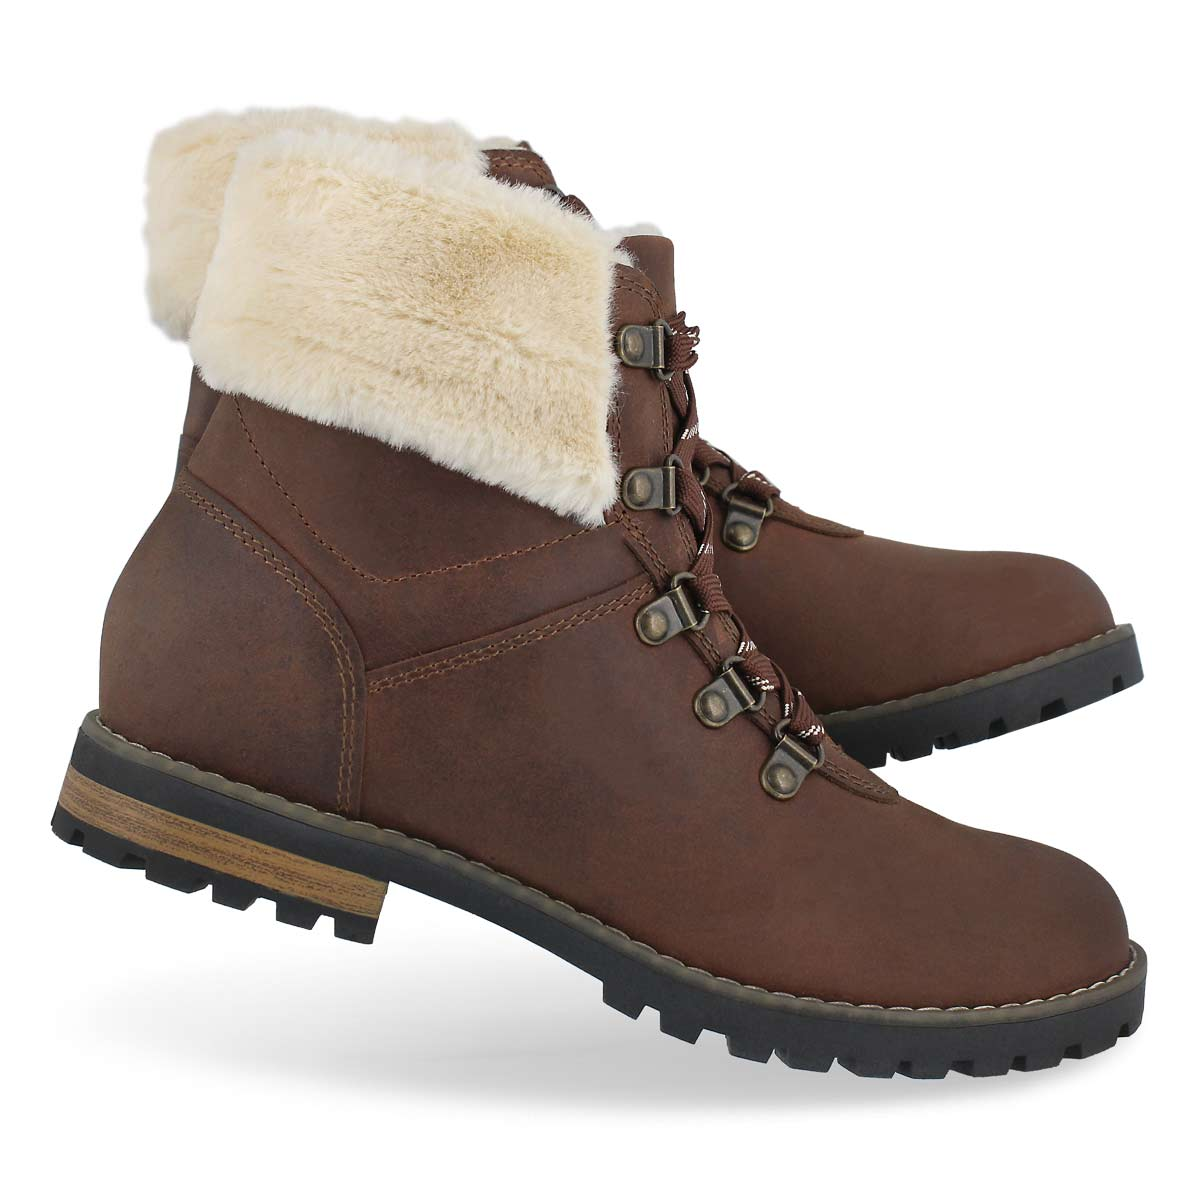 Lds Chambly brown wtpf winter boot